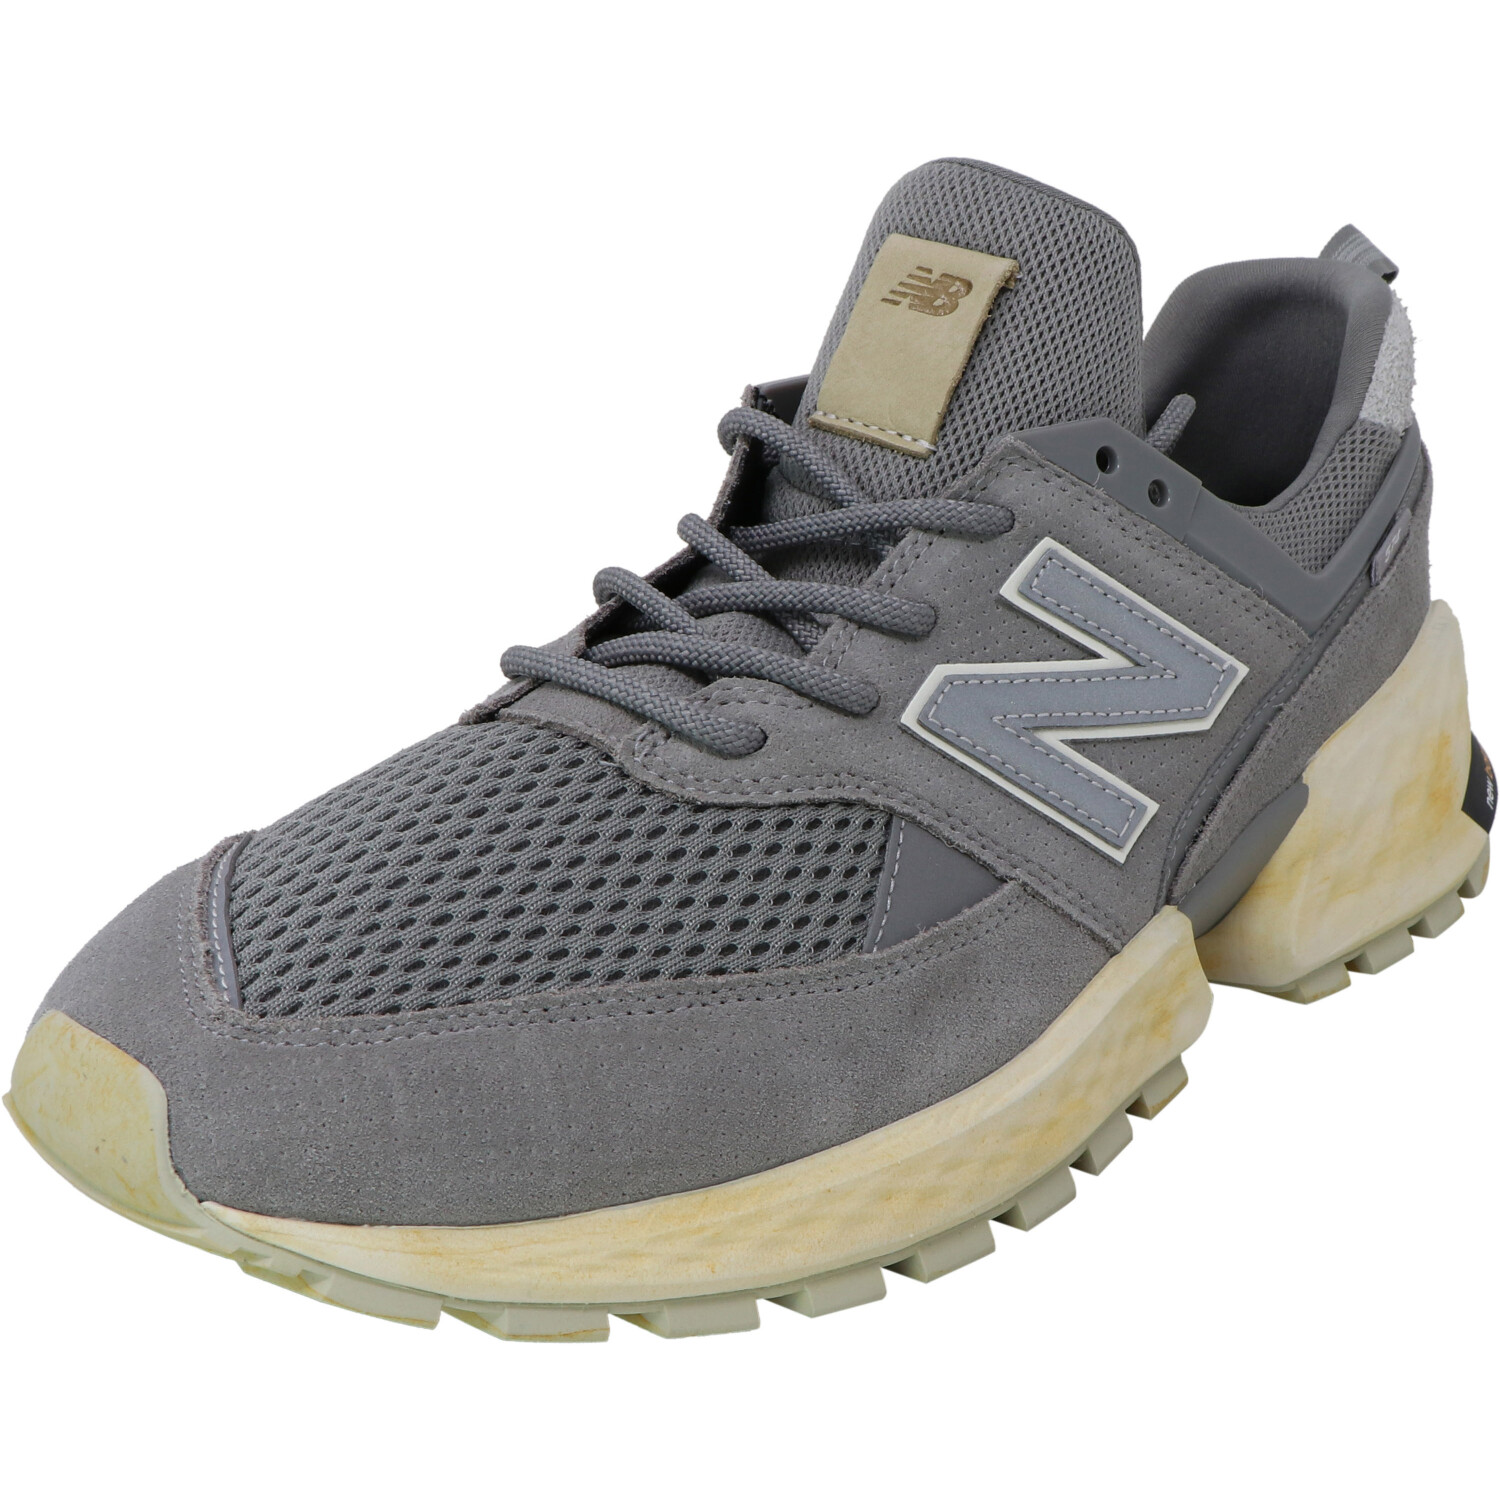 New Balance Men's Ms574 Afa Ankle-High Suede Sneaker - 14M